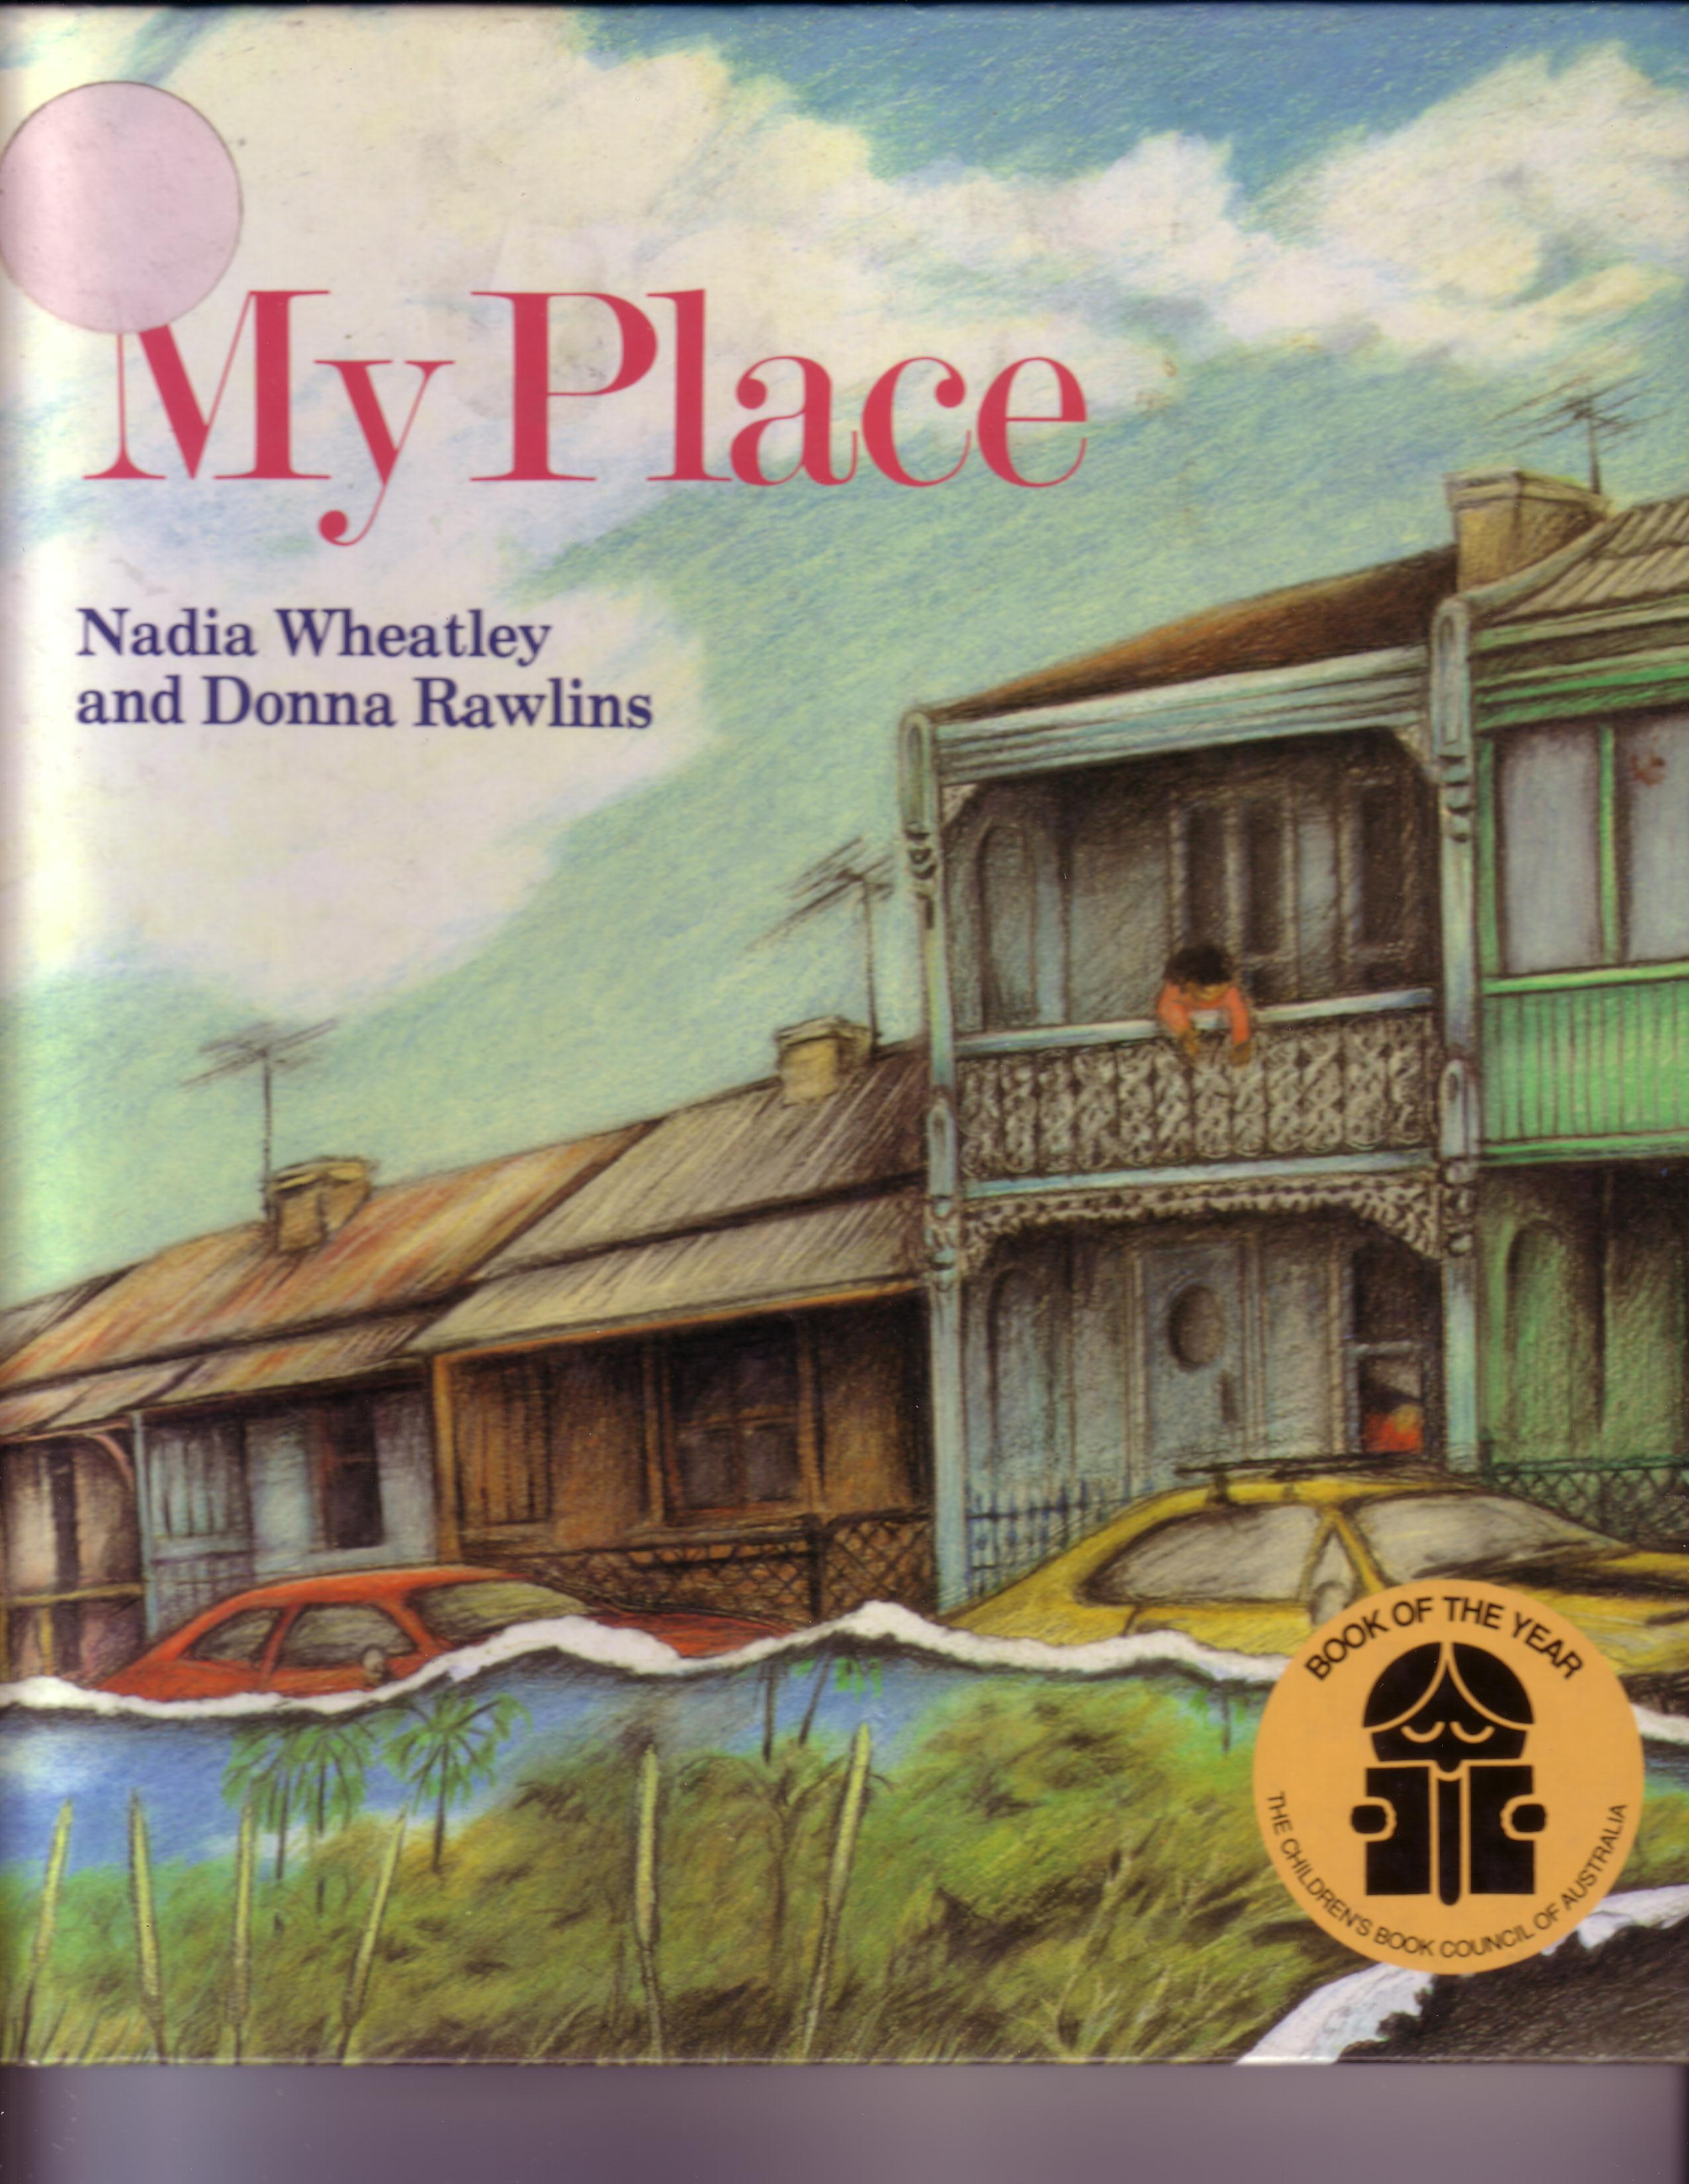 MY PLACE by NADIA WHEATLEY AND DONNA RAWLINS ISBN 0-85924-575-6